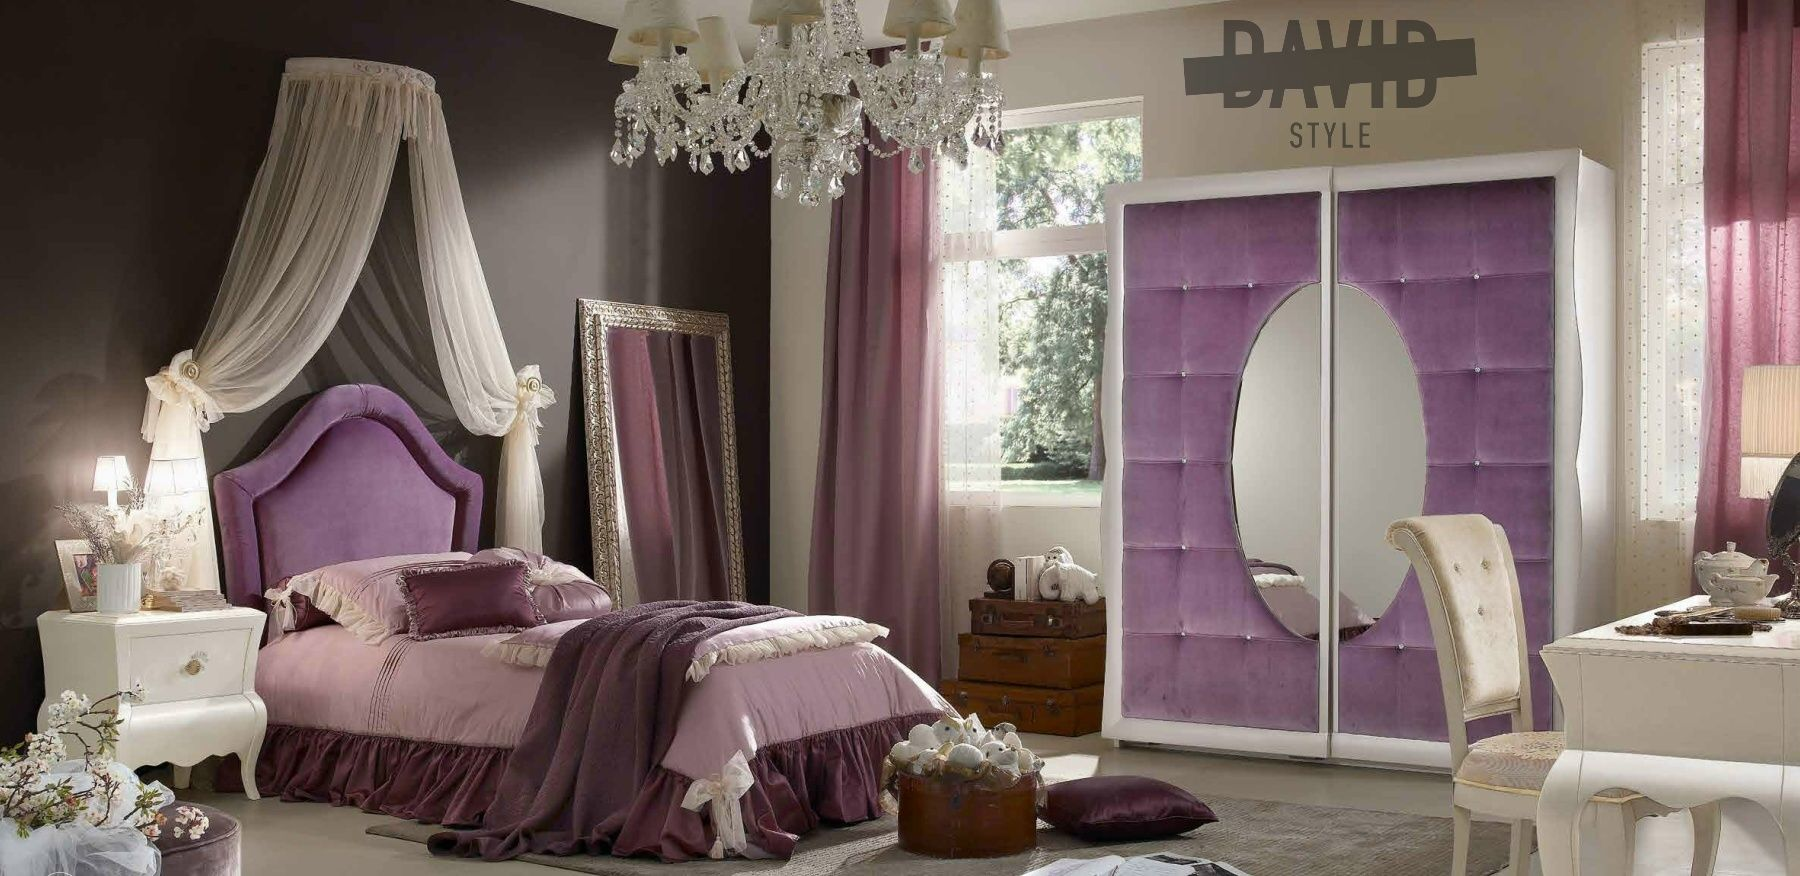 Luxury bedroom Camera da letto barocco moderno DavidStyle for your ...